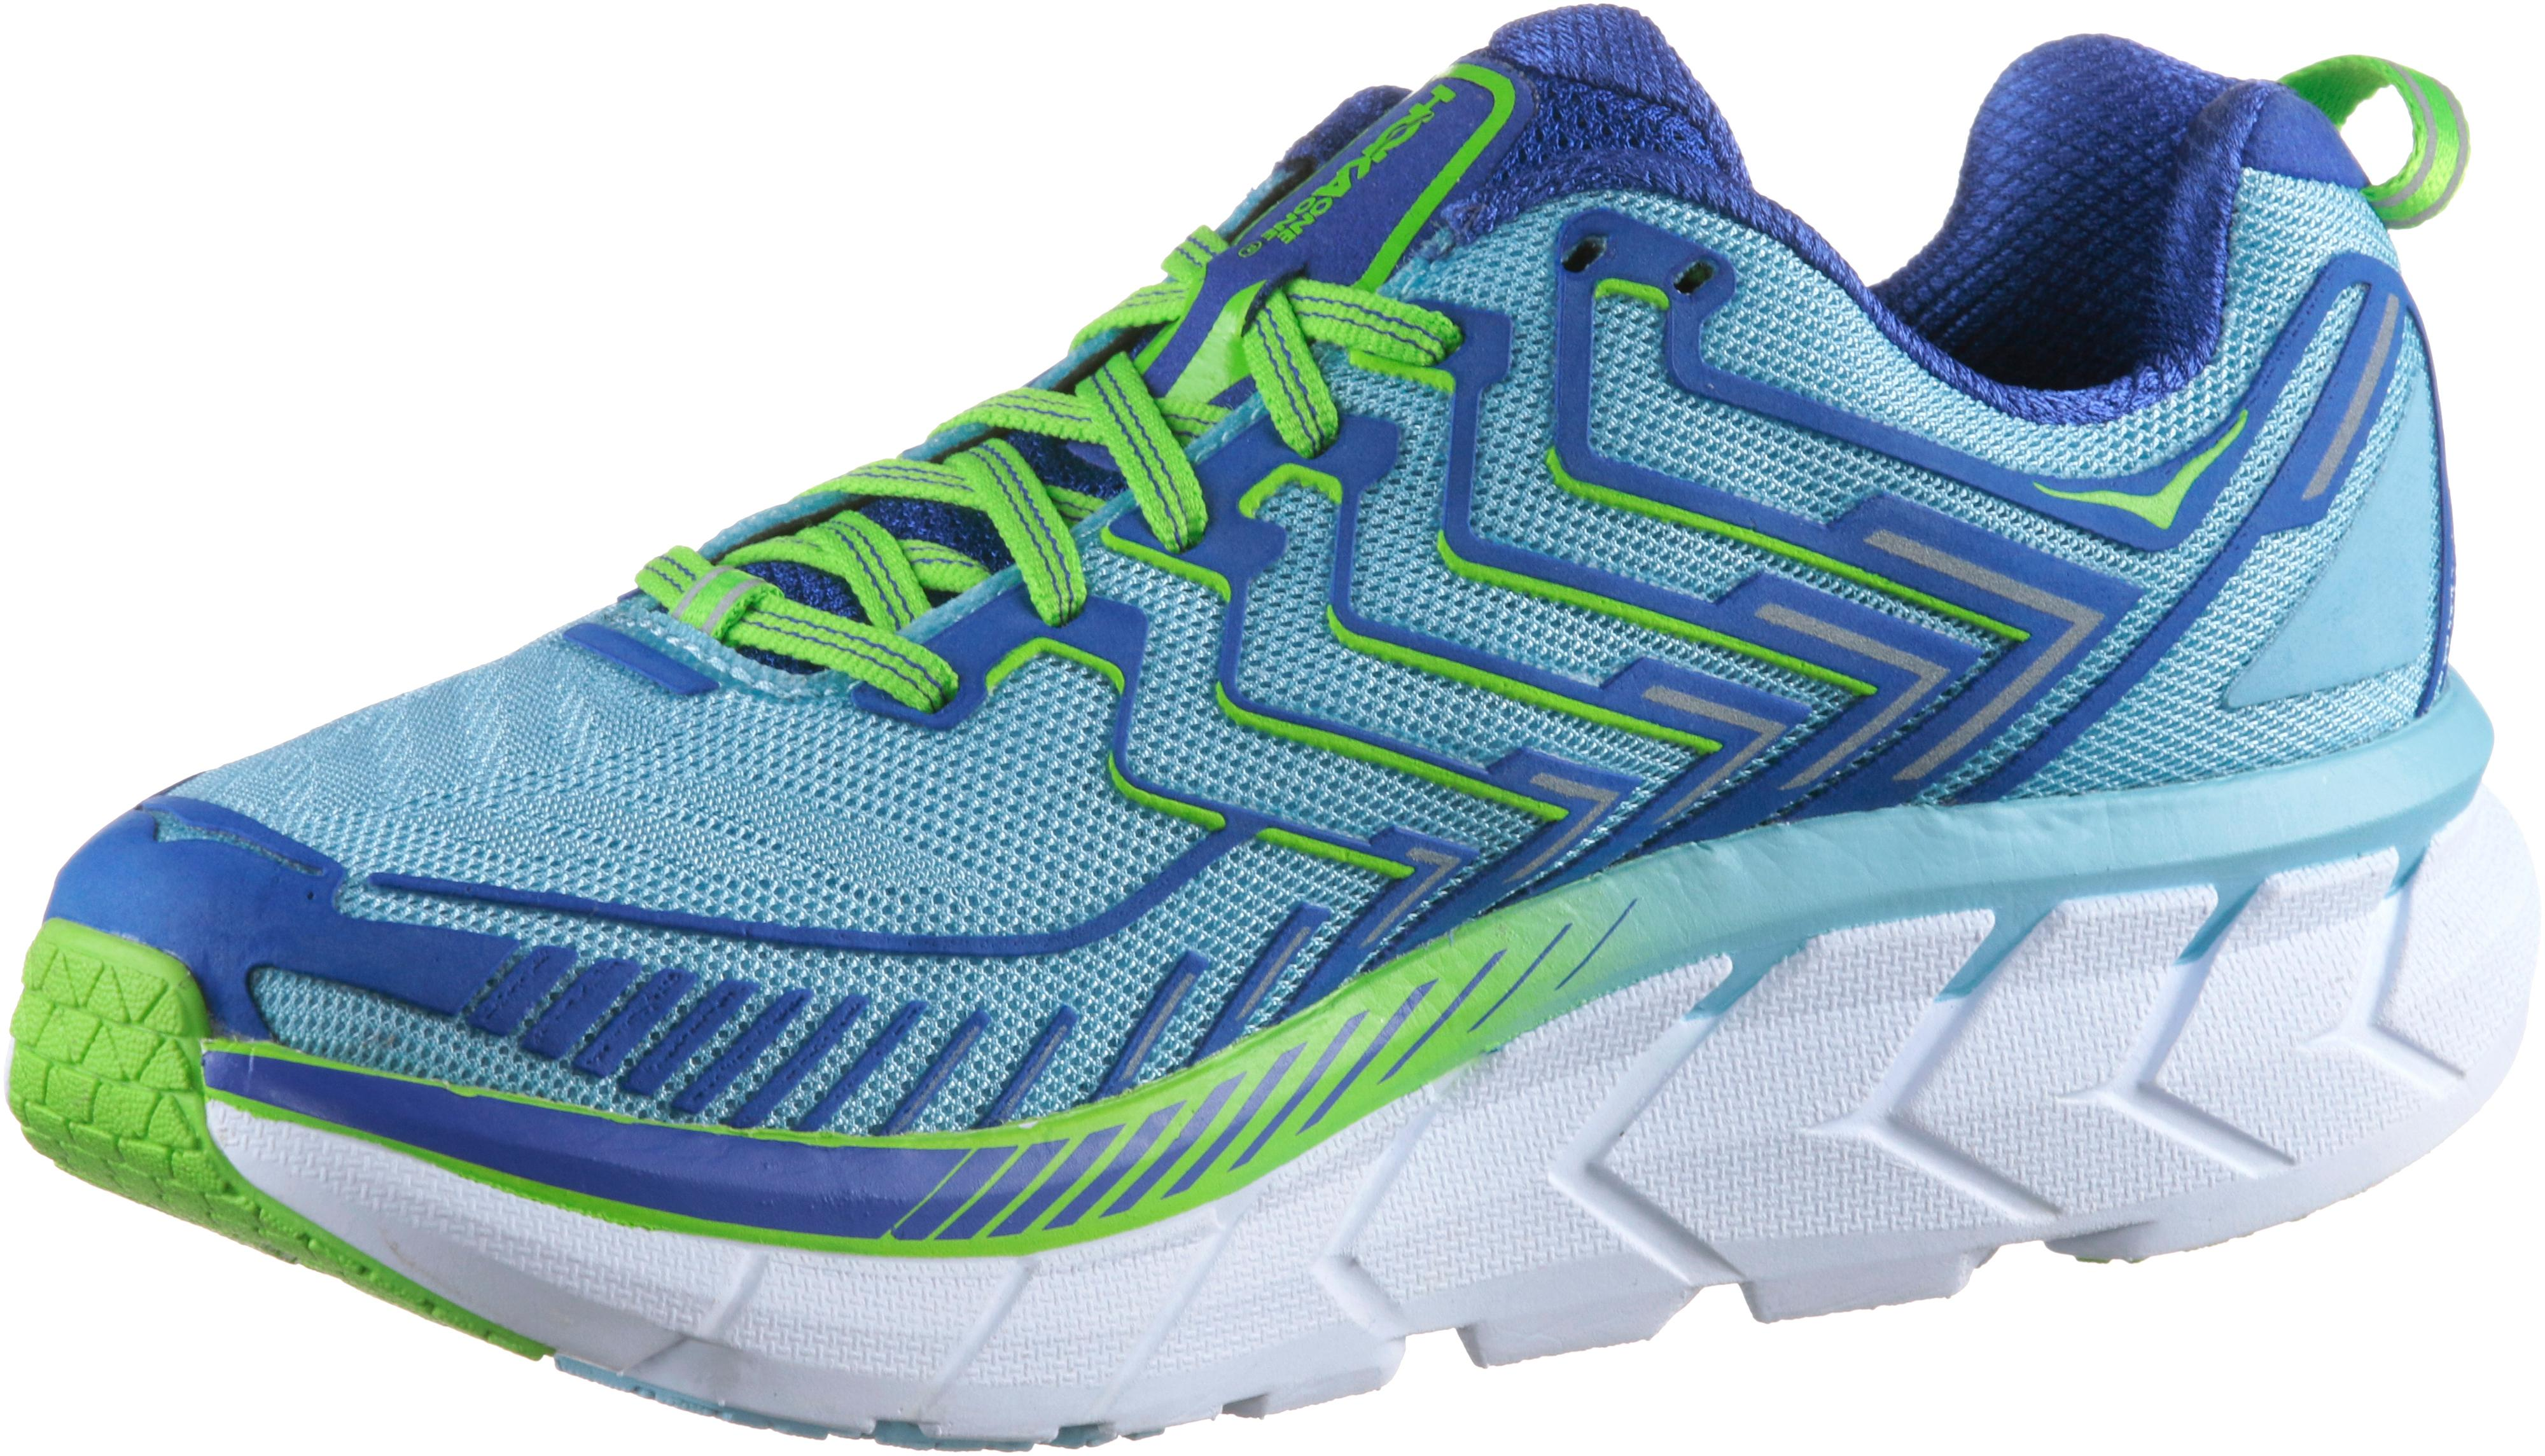 Hoka One One Damen Clifton 4 Laufschuhe Damen One sky-Blau-surf-the-web im Online Shop von SportScheck kaufen Gute Qualität beliebte Schuhe 63ea70